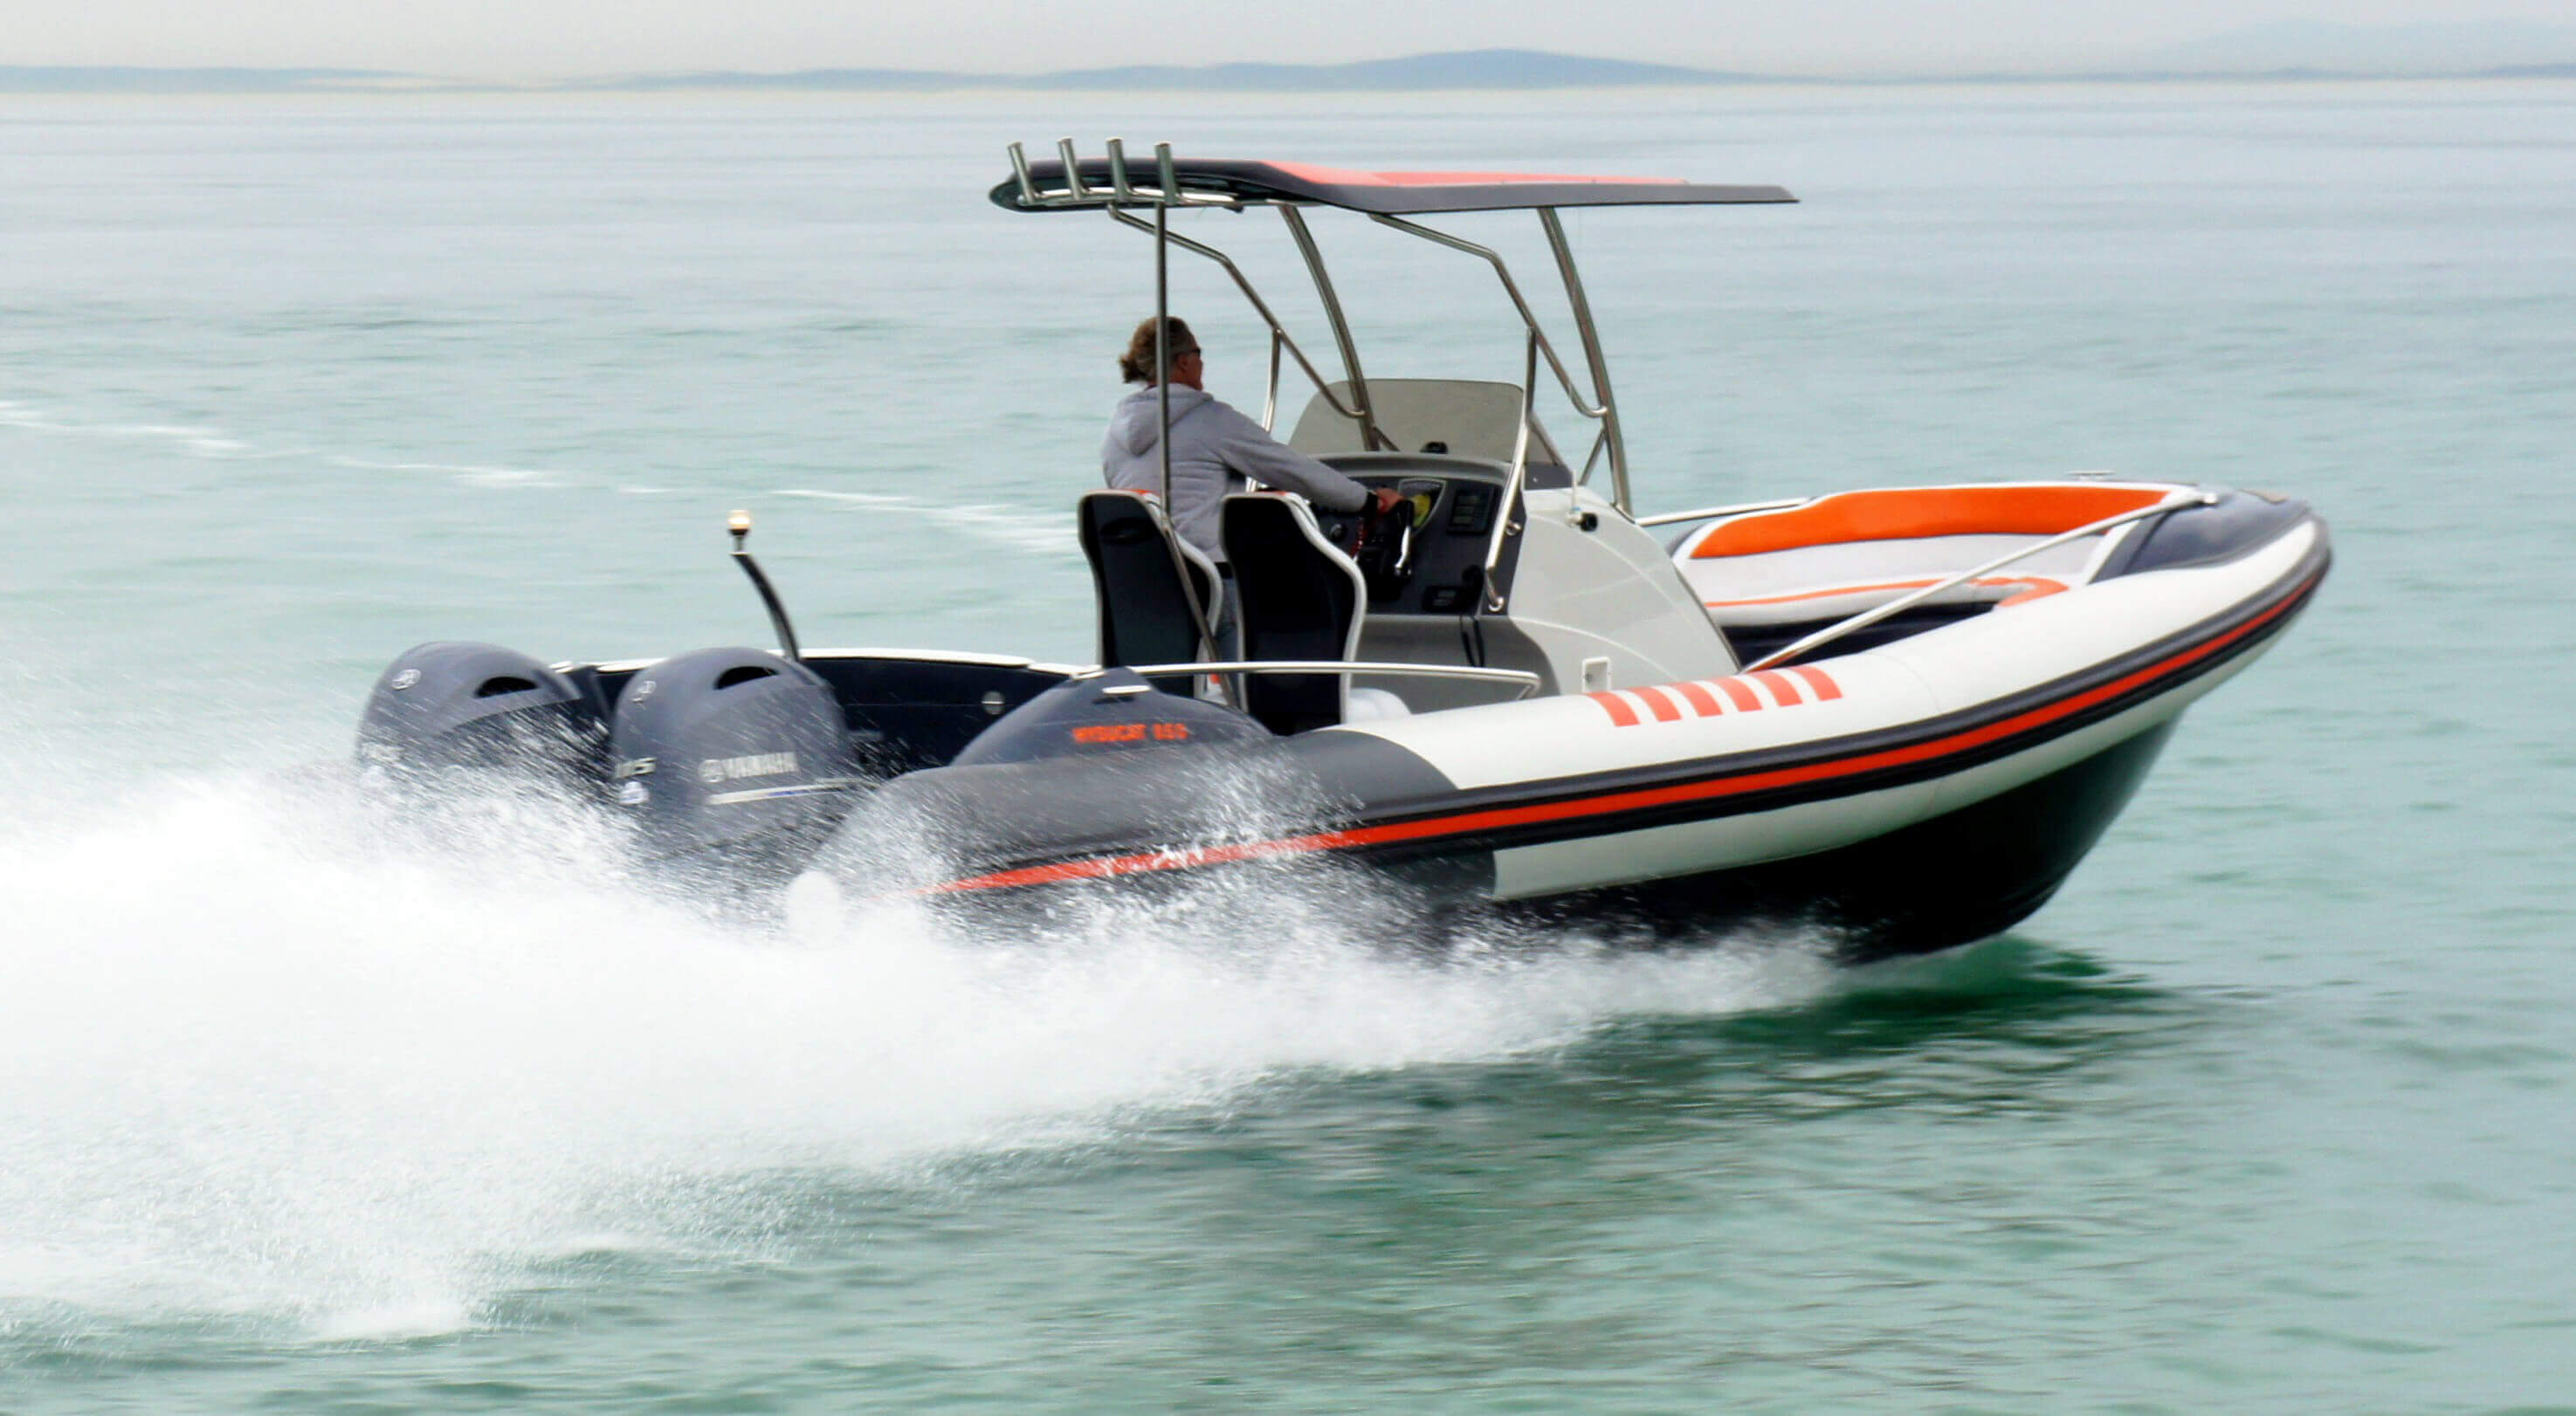 What Separates Hysucat From Other Hydrofoil Companies? | Hysucat